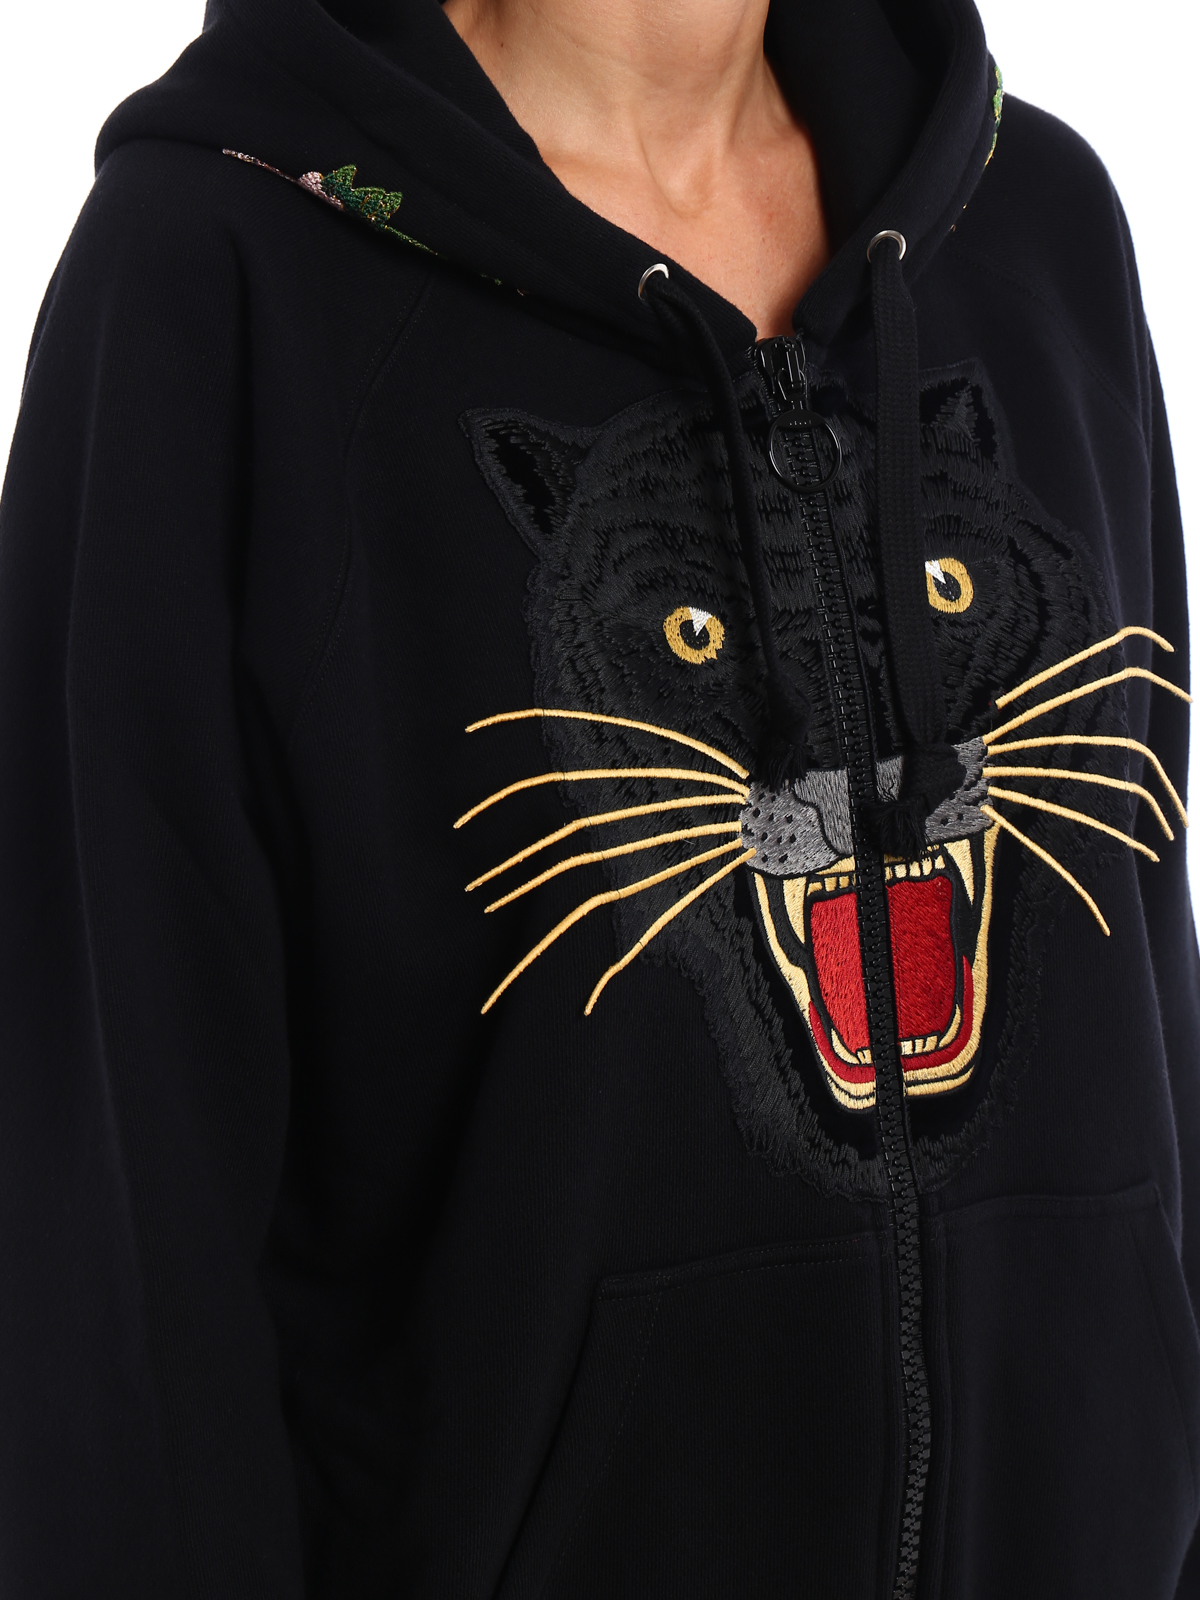 d13e7347375 GUCCI buy online Tiger patch over hoodie · GUCCI  Sweatshirts   Sweaters ...